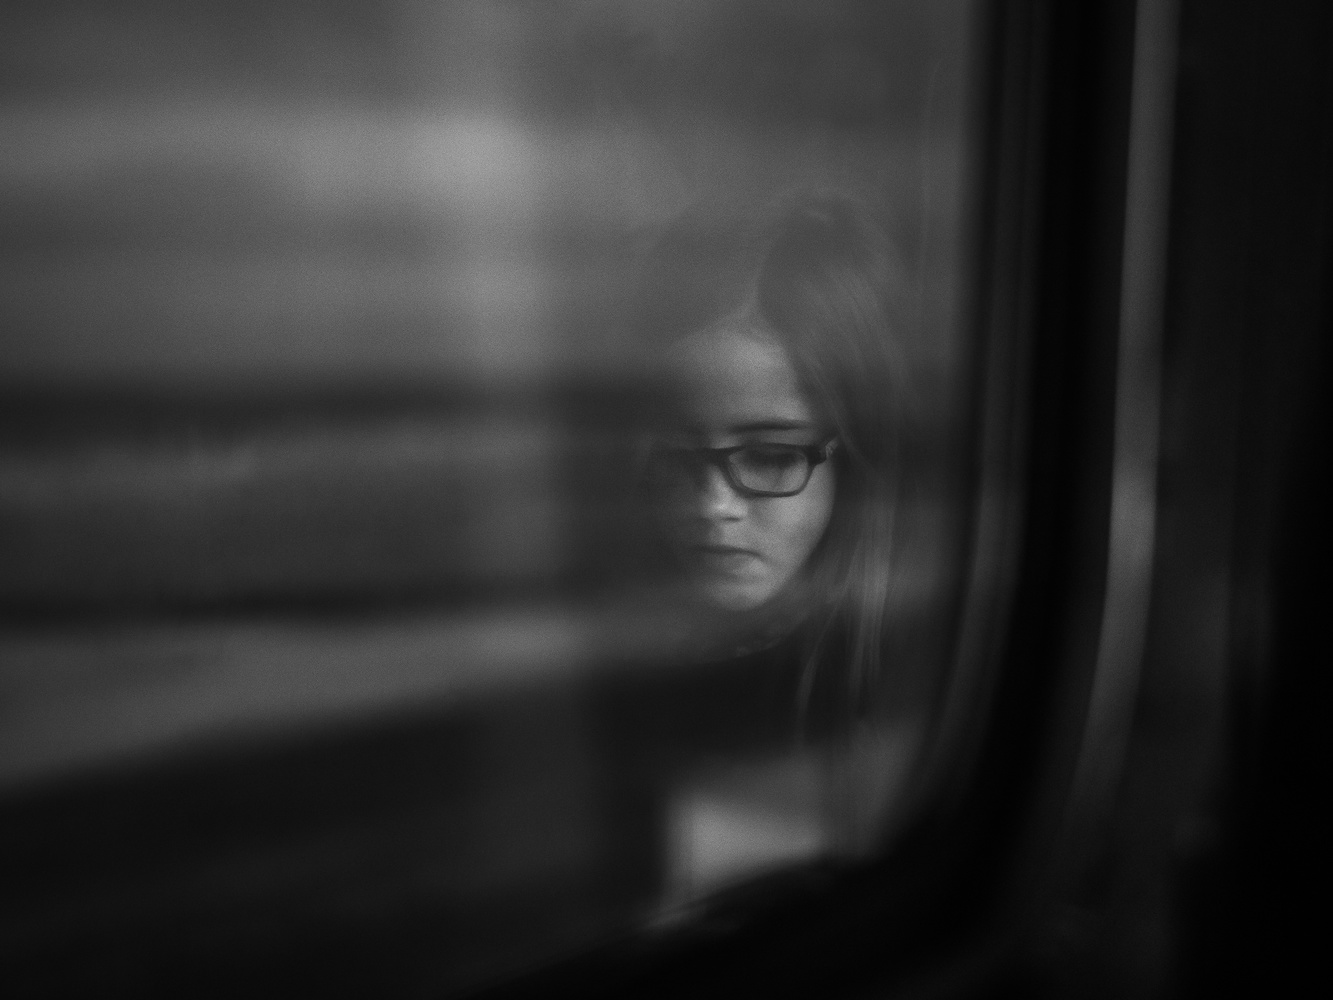 In the train by tomas doe